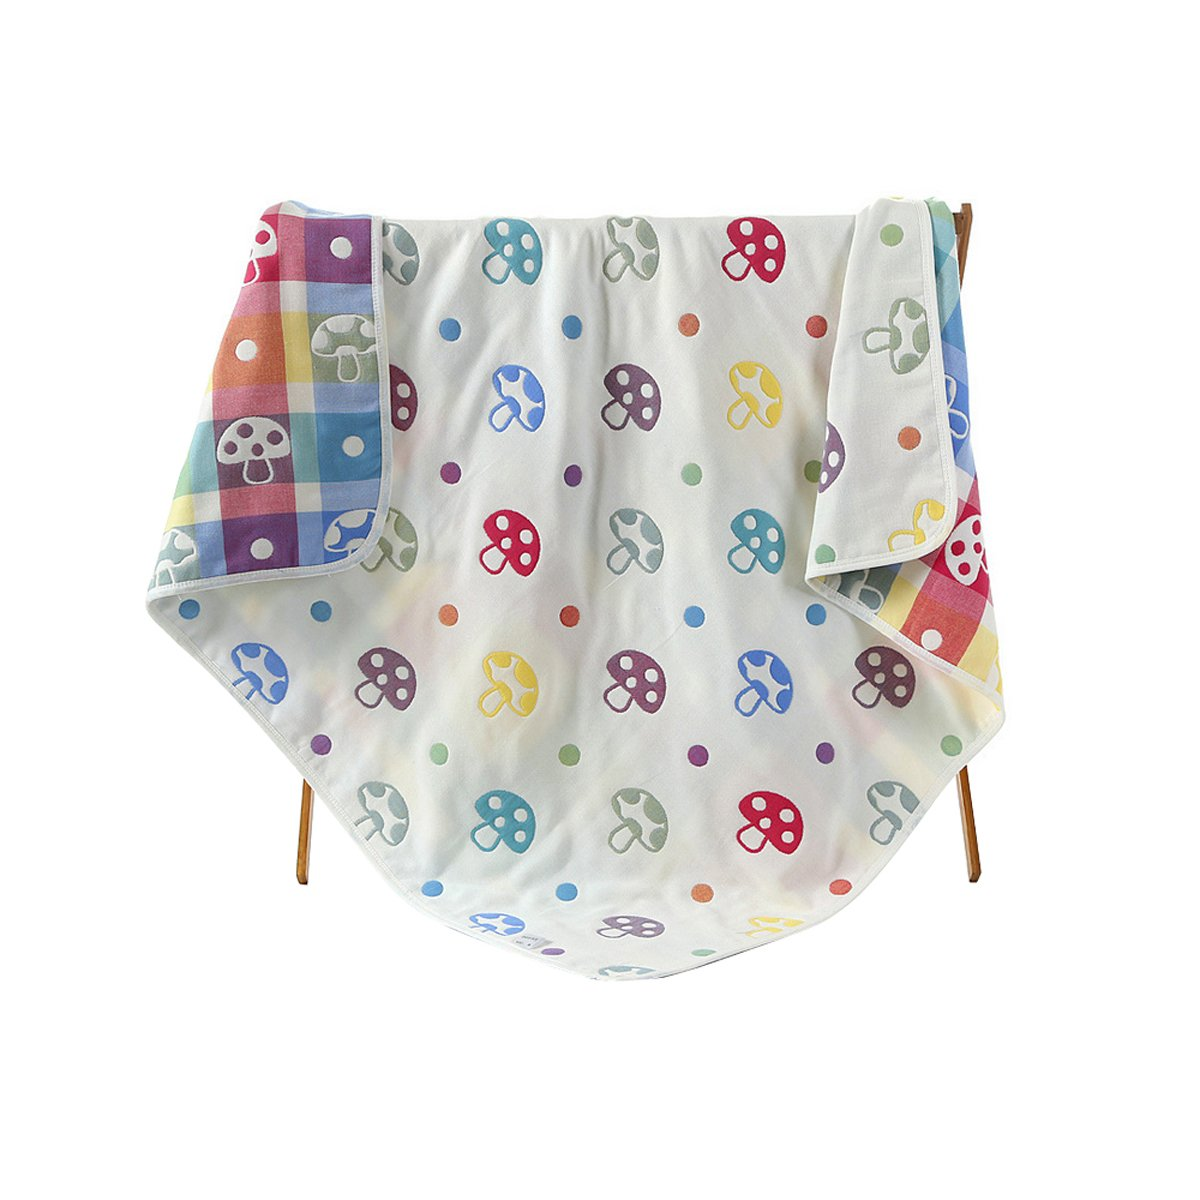 TOLLION 100% Organic Cotton Swaddle Blankets Baby Receiving Blankets- 42-by-42-Inch (Mushroom) by TOLLION